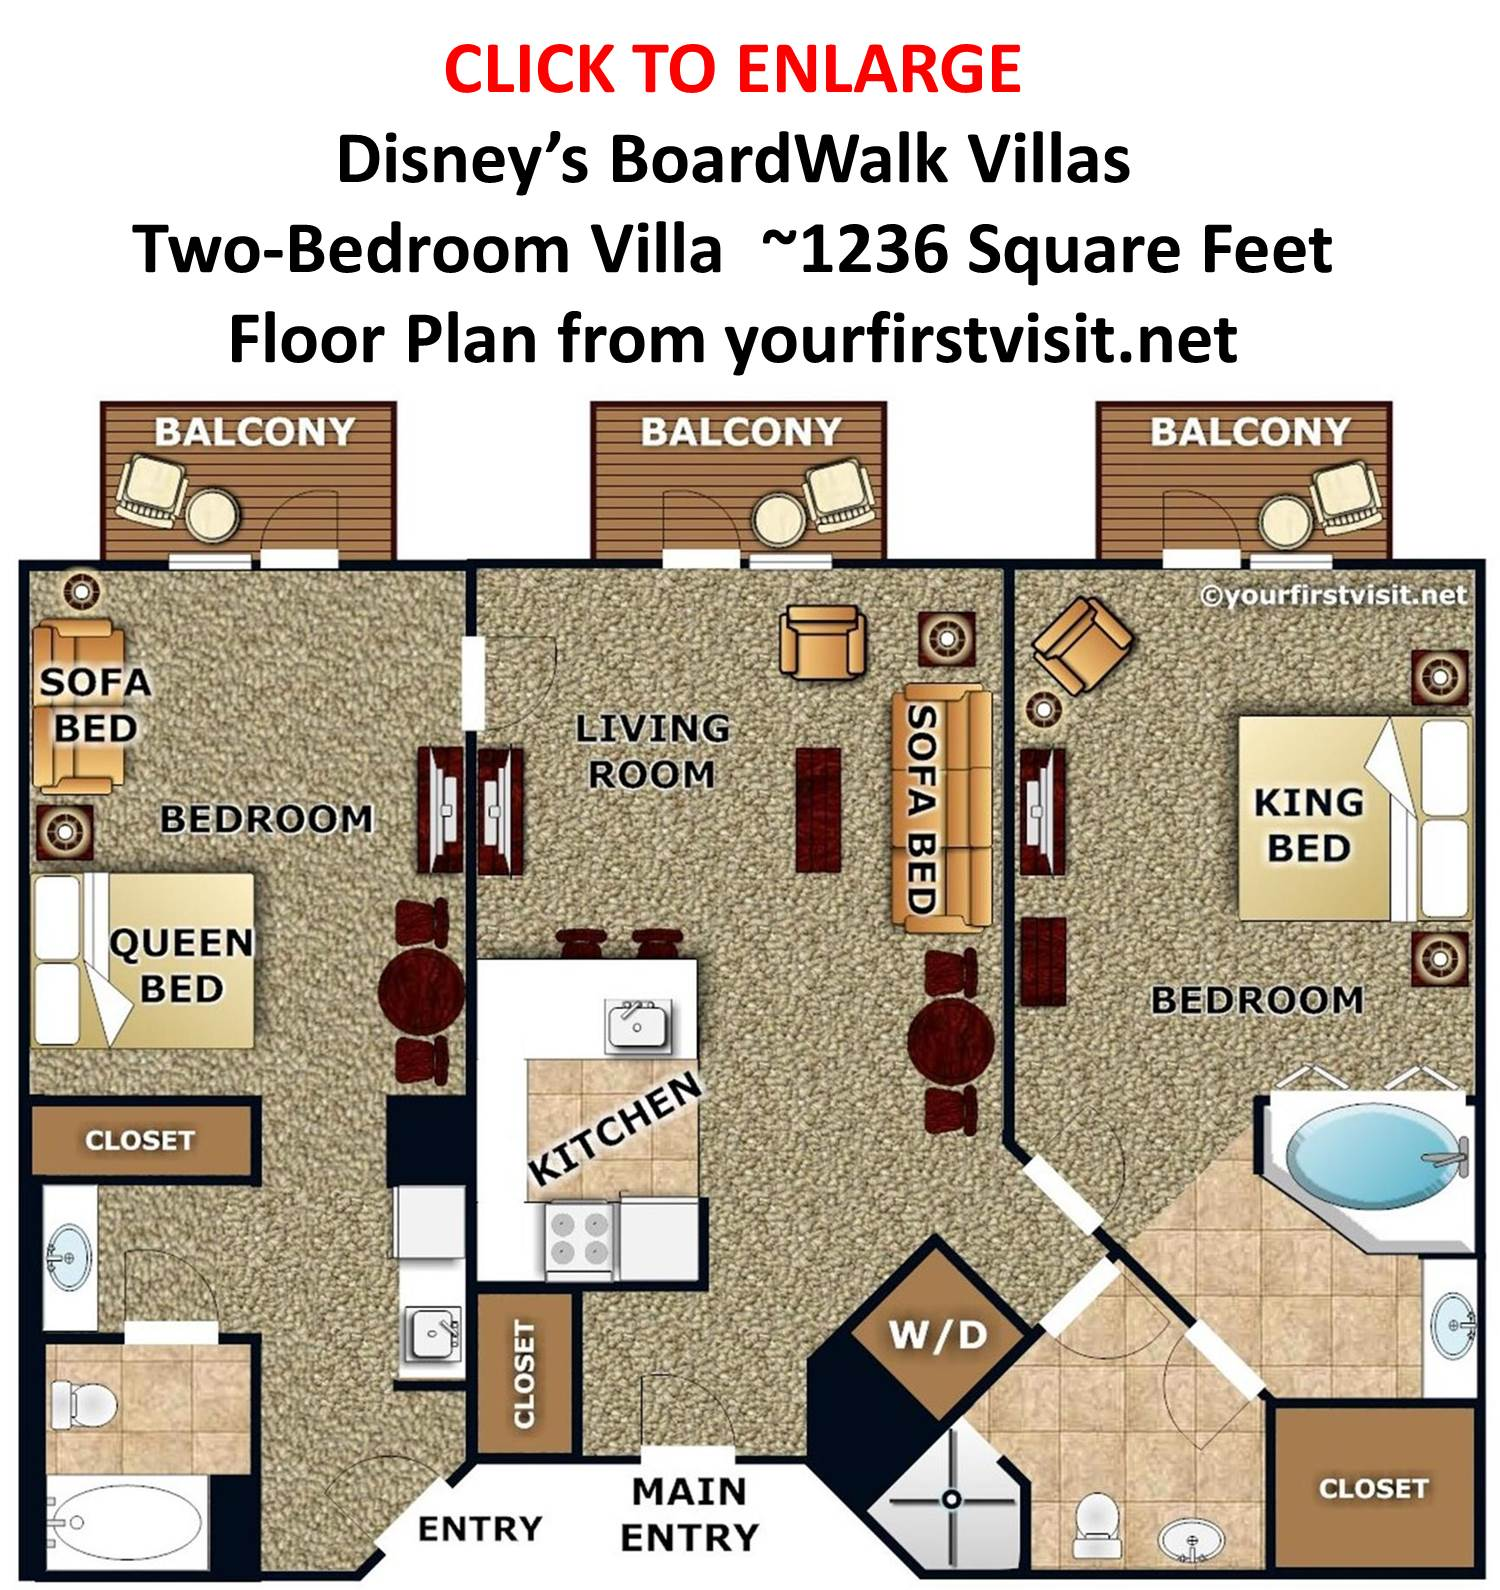 Disney's BoardWalk Villas Two Bedroom Villa Floor Plan from yourfirstvisit.net